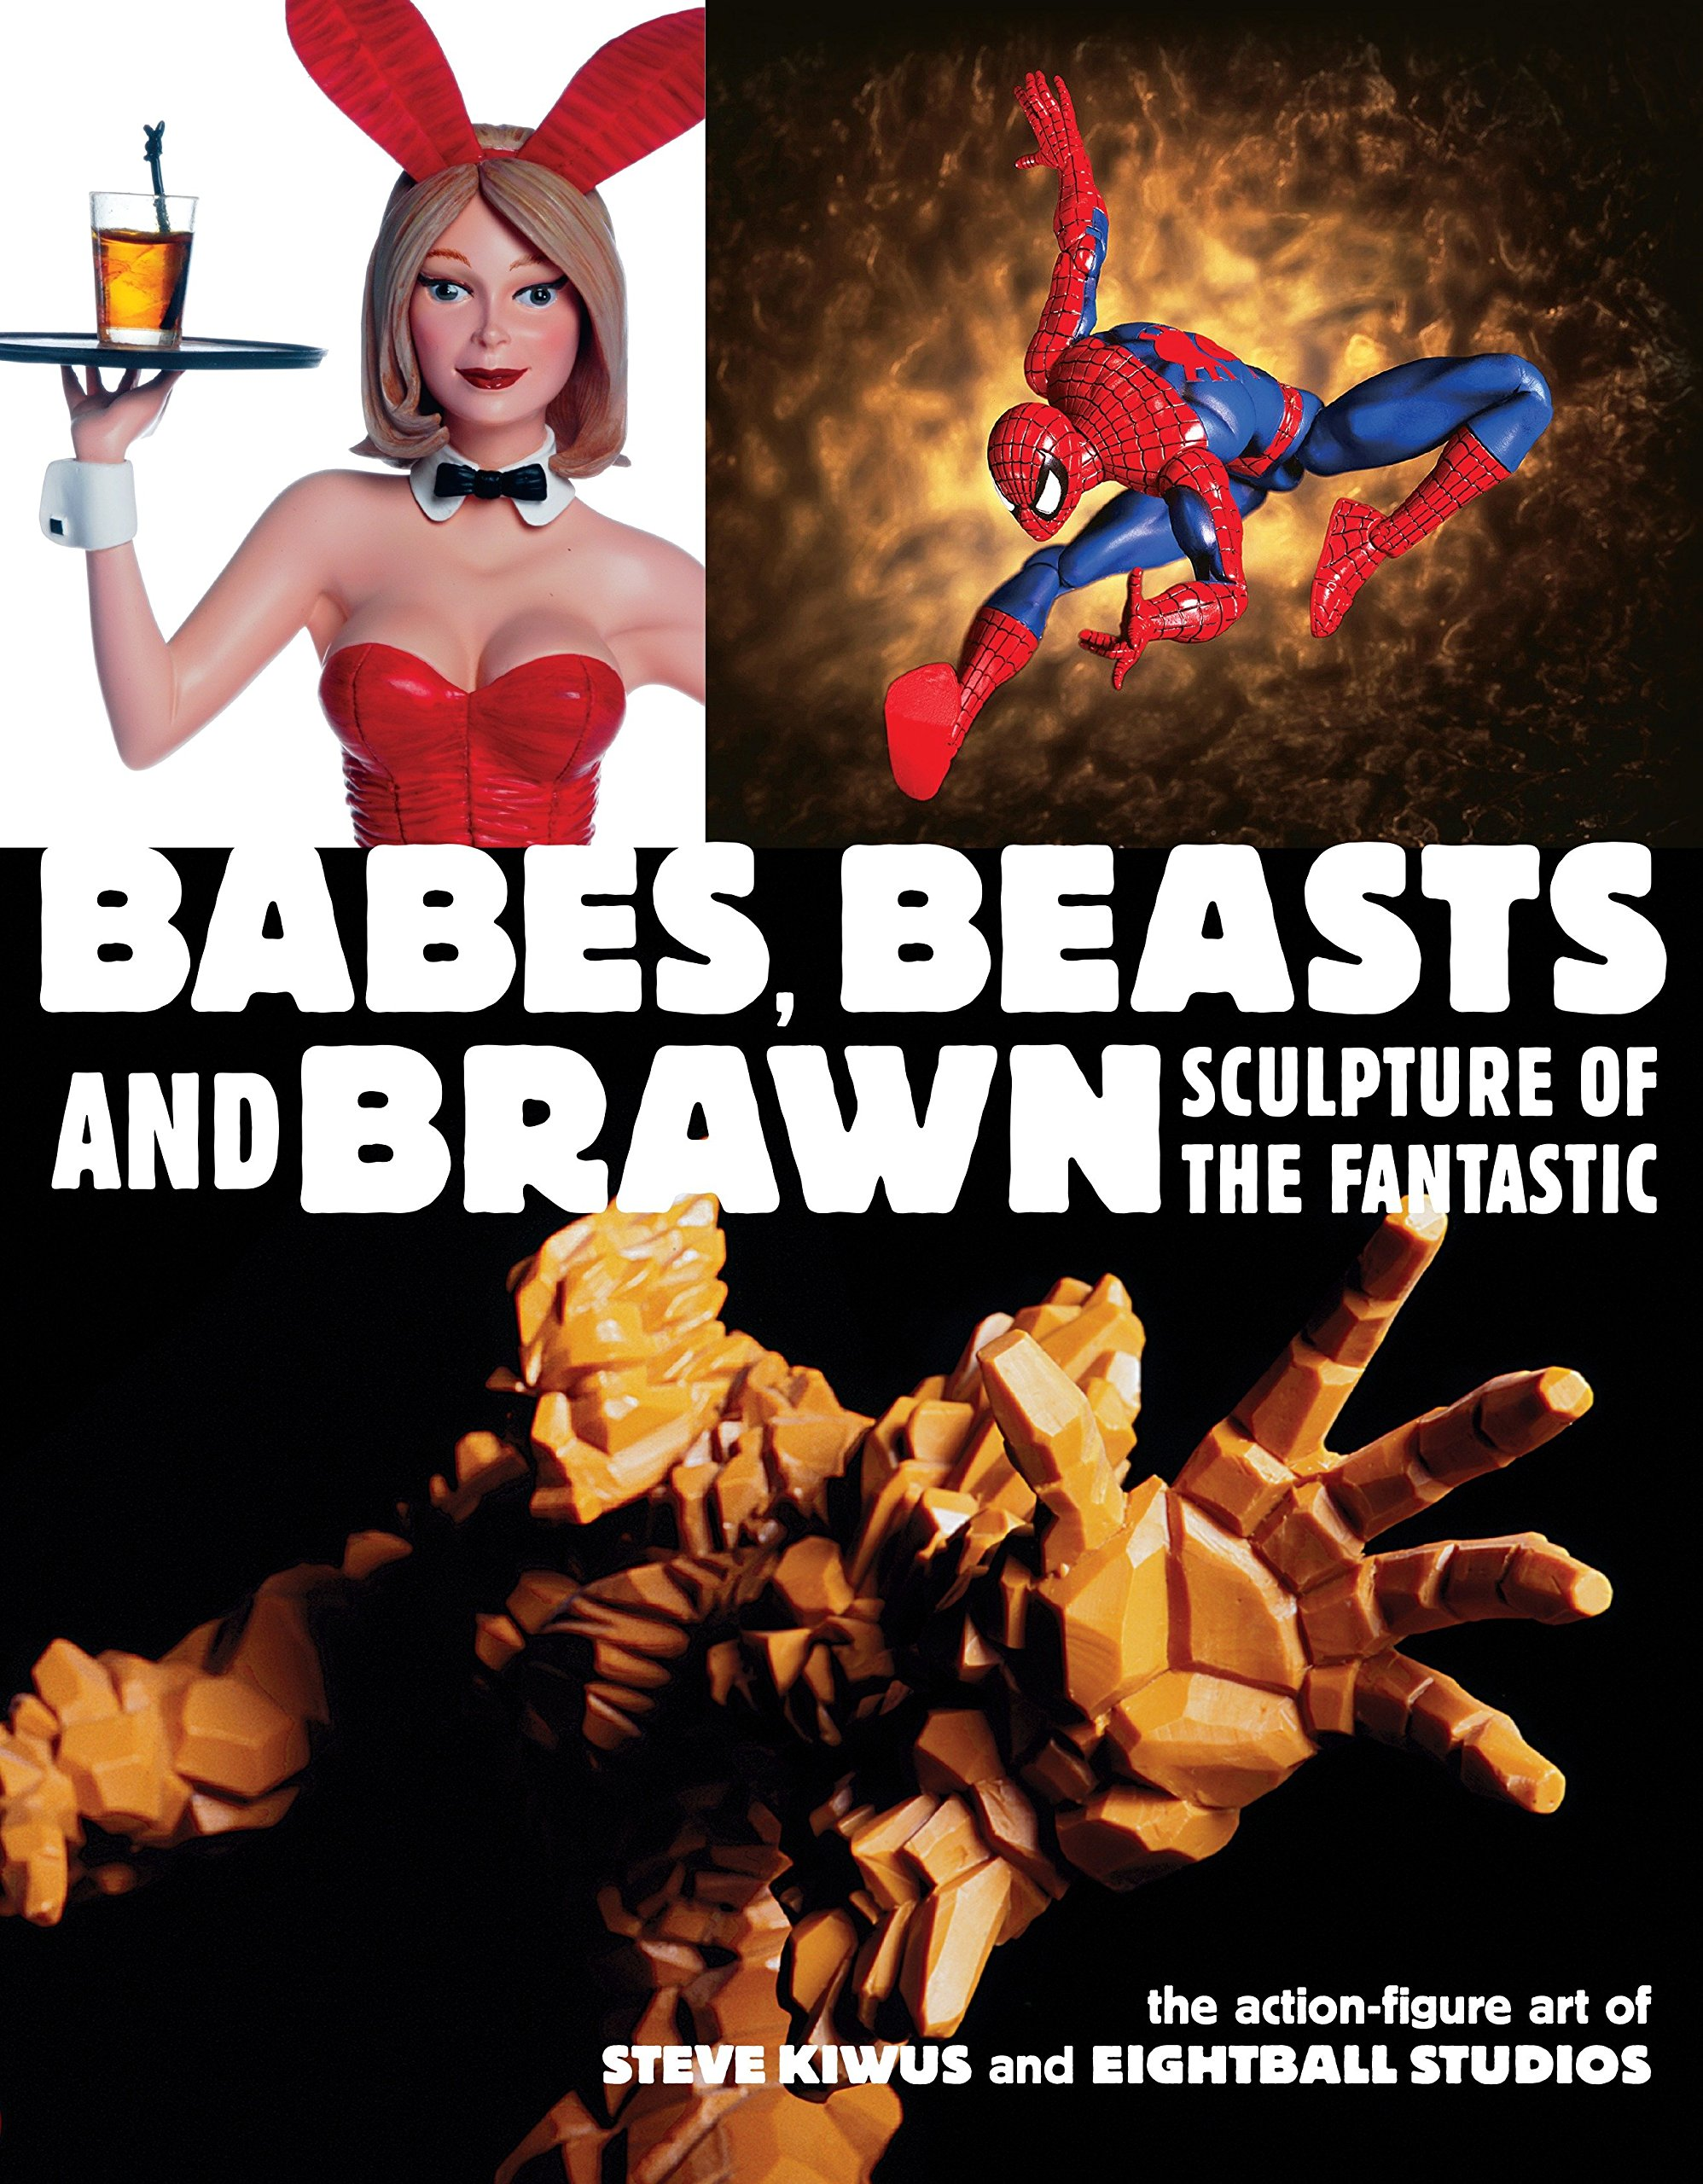 Babes, Beasts, and Brawn: Sculpture of the Fantastic by Dark Horse